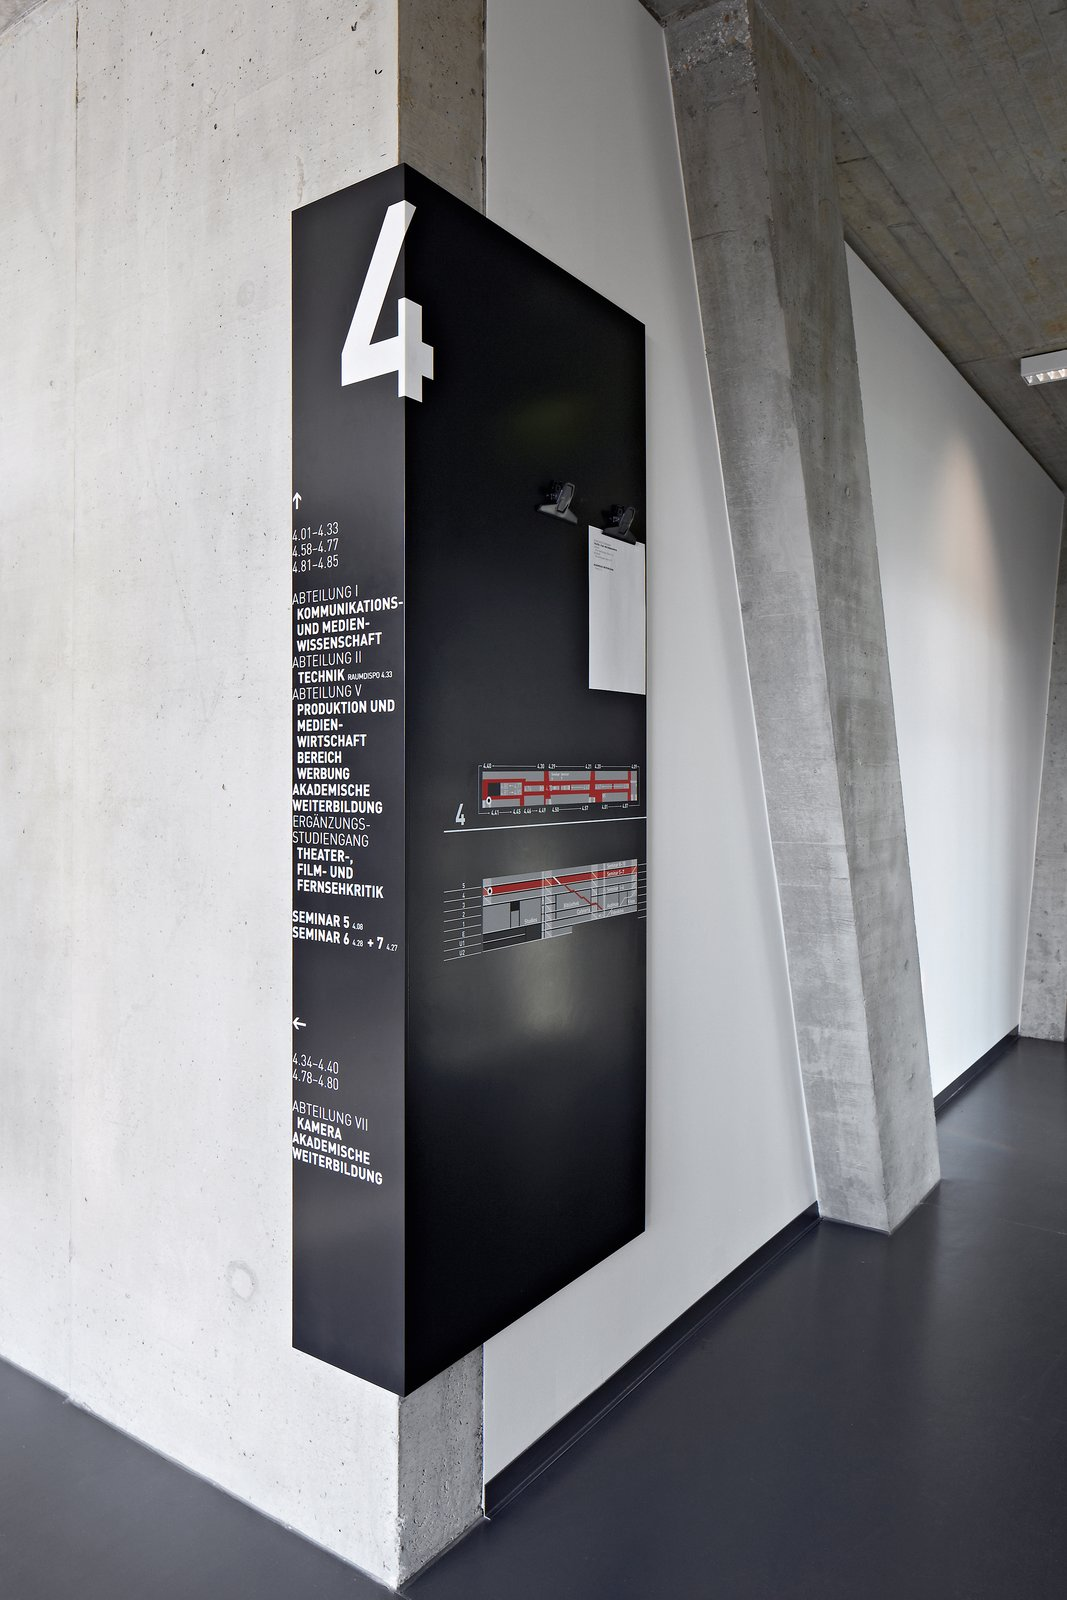 University of Television and Film Munich: More detailed information is contained on distinctively designed black signs that wrap around corners almost like shadows, so that they can be easily seen from the floors and the central staircase.  Way-Finding Systems by Rob Hewitt